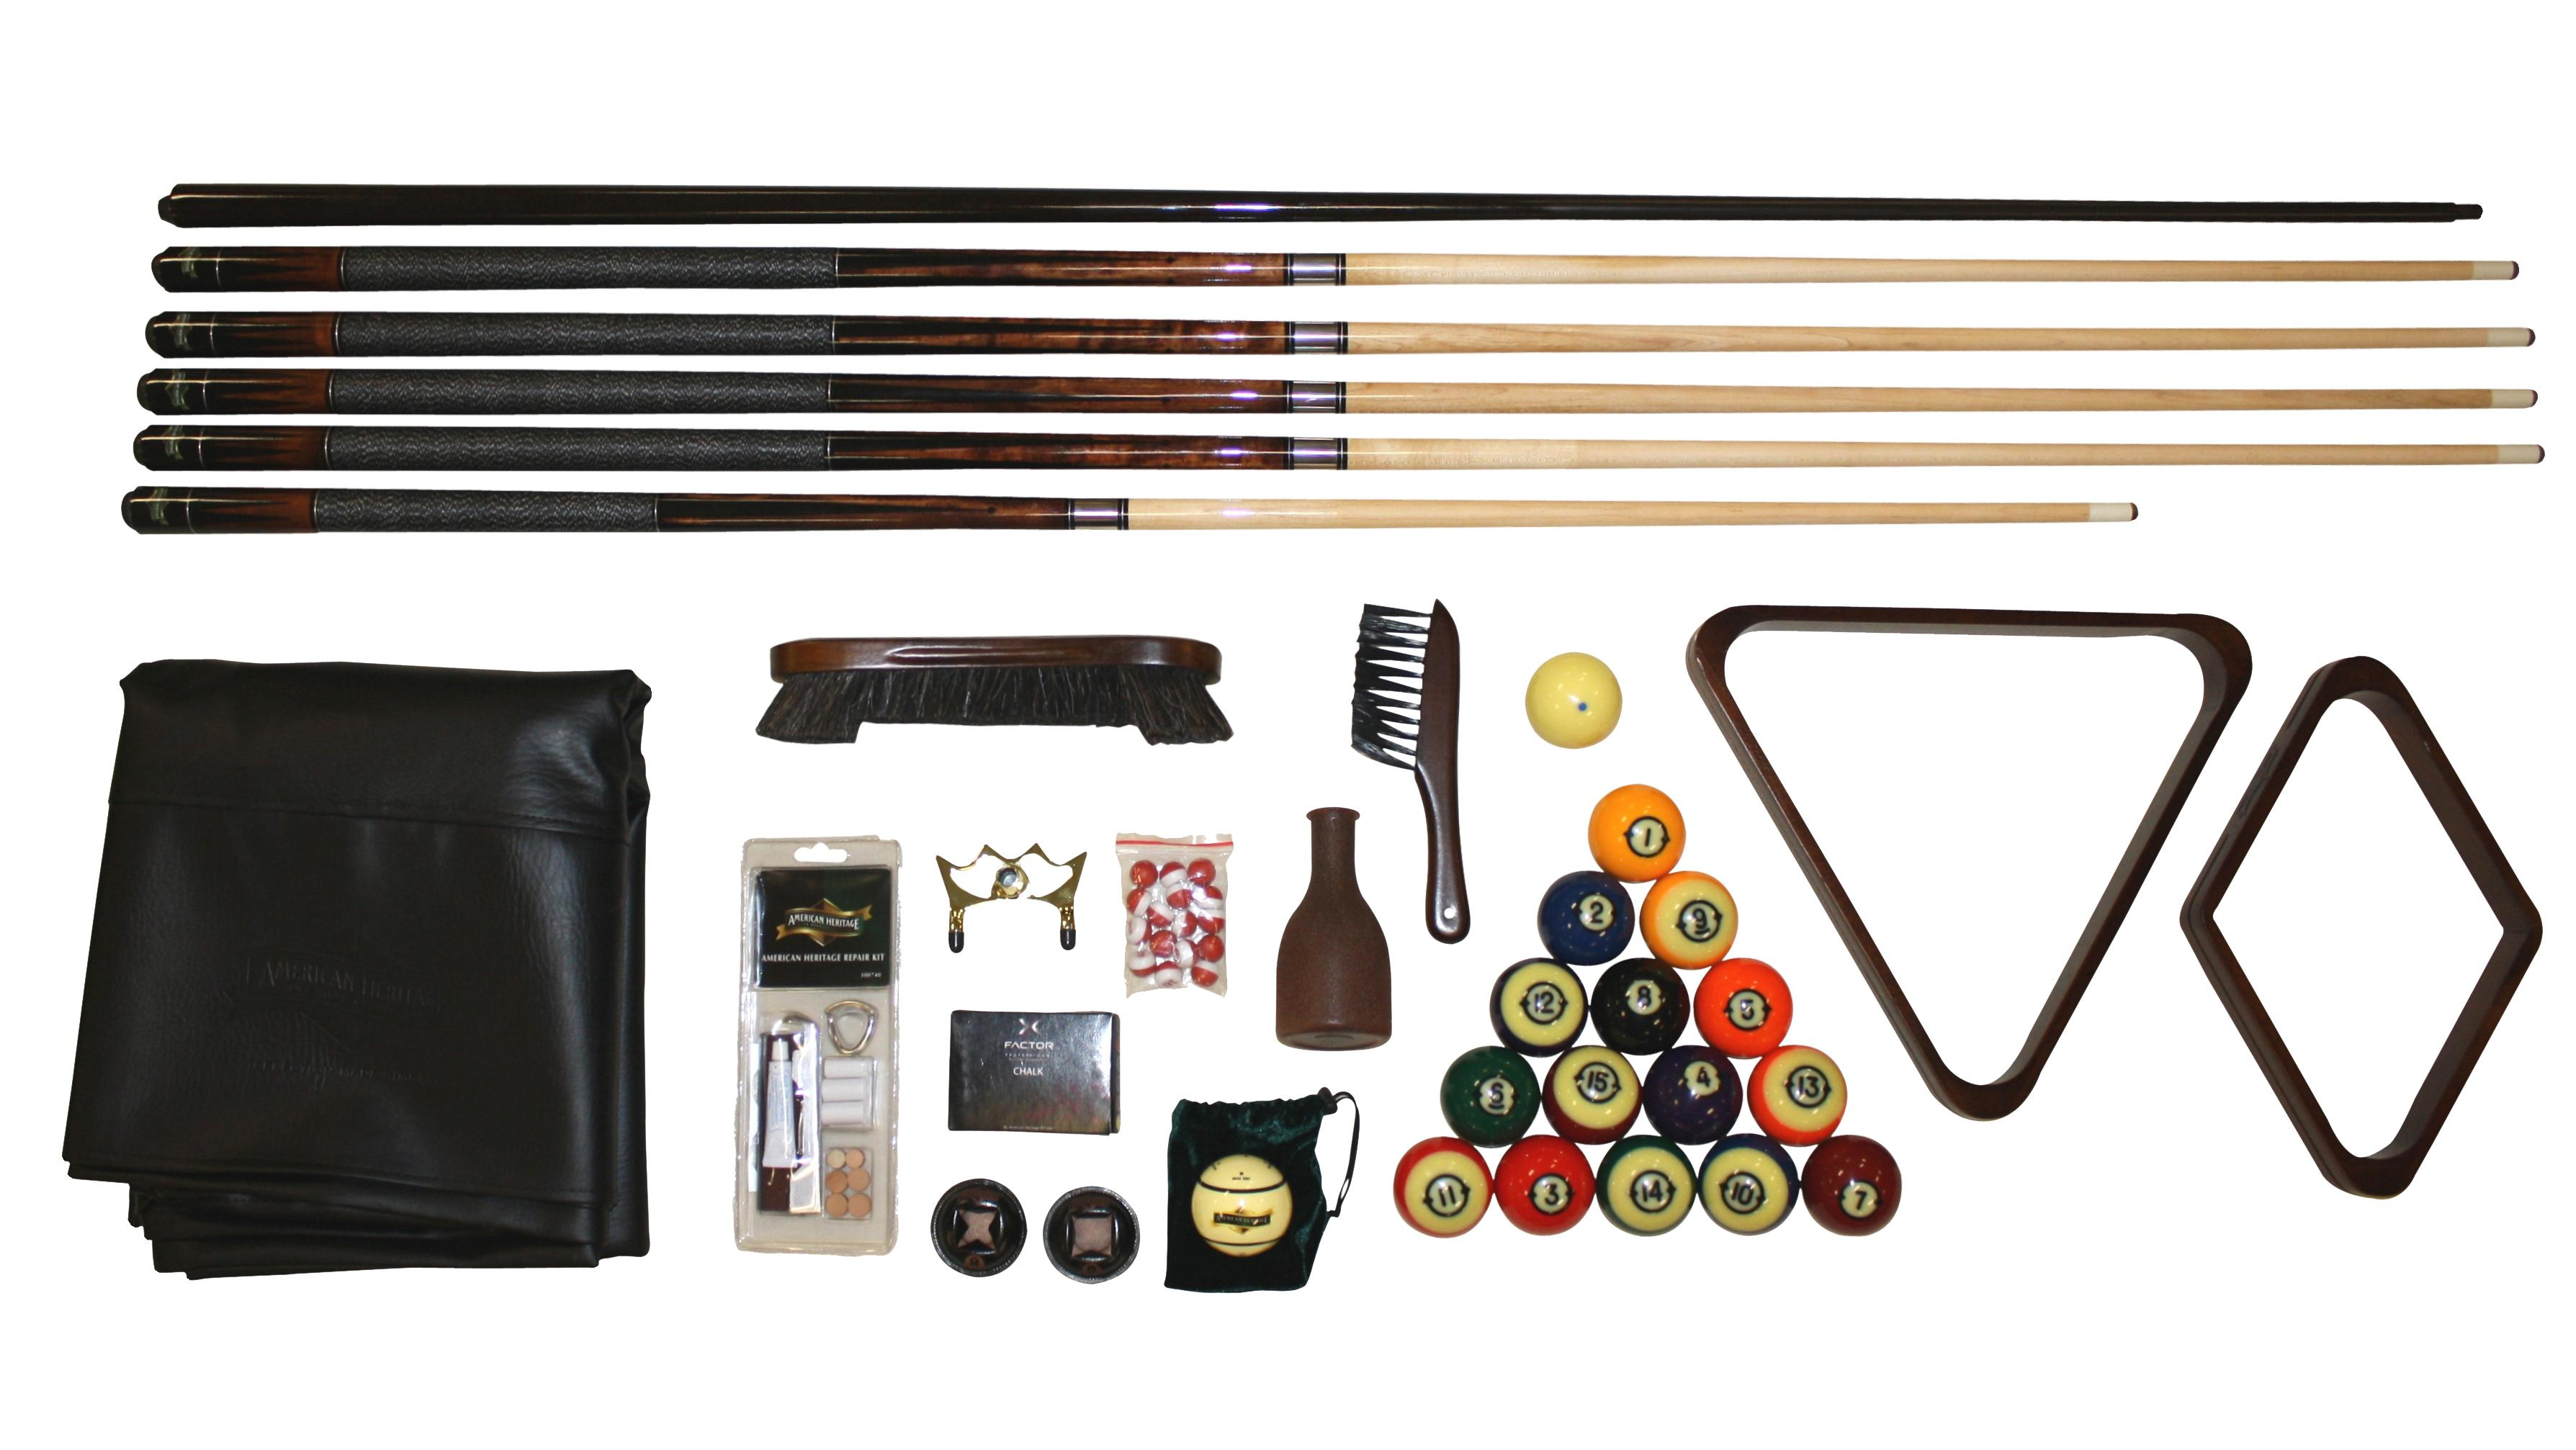 American Heritage Billiards Sausalito Accessory Kit - Item Number: 300134